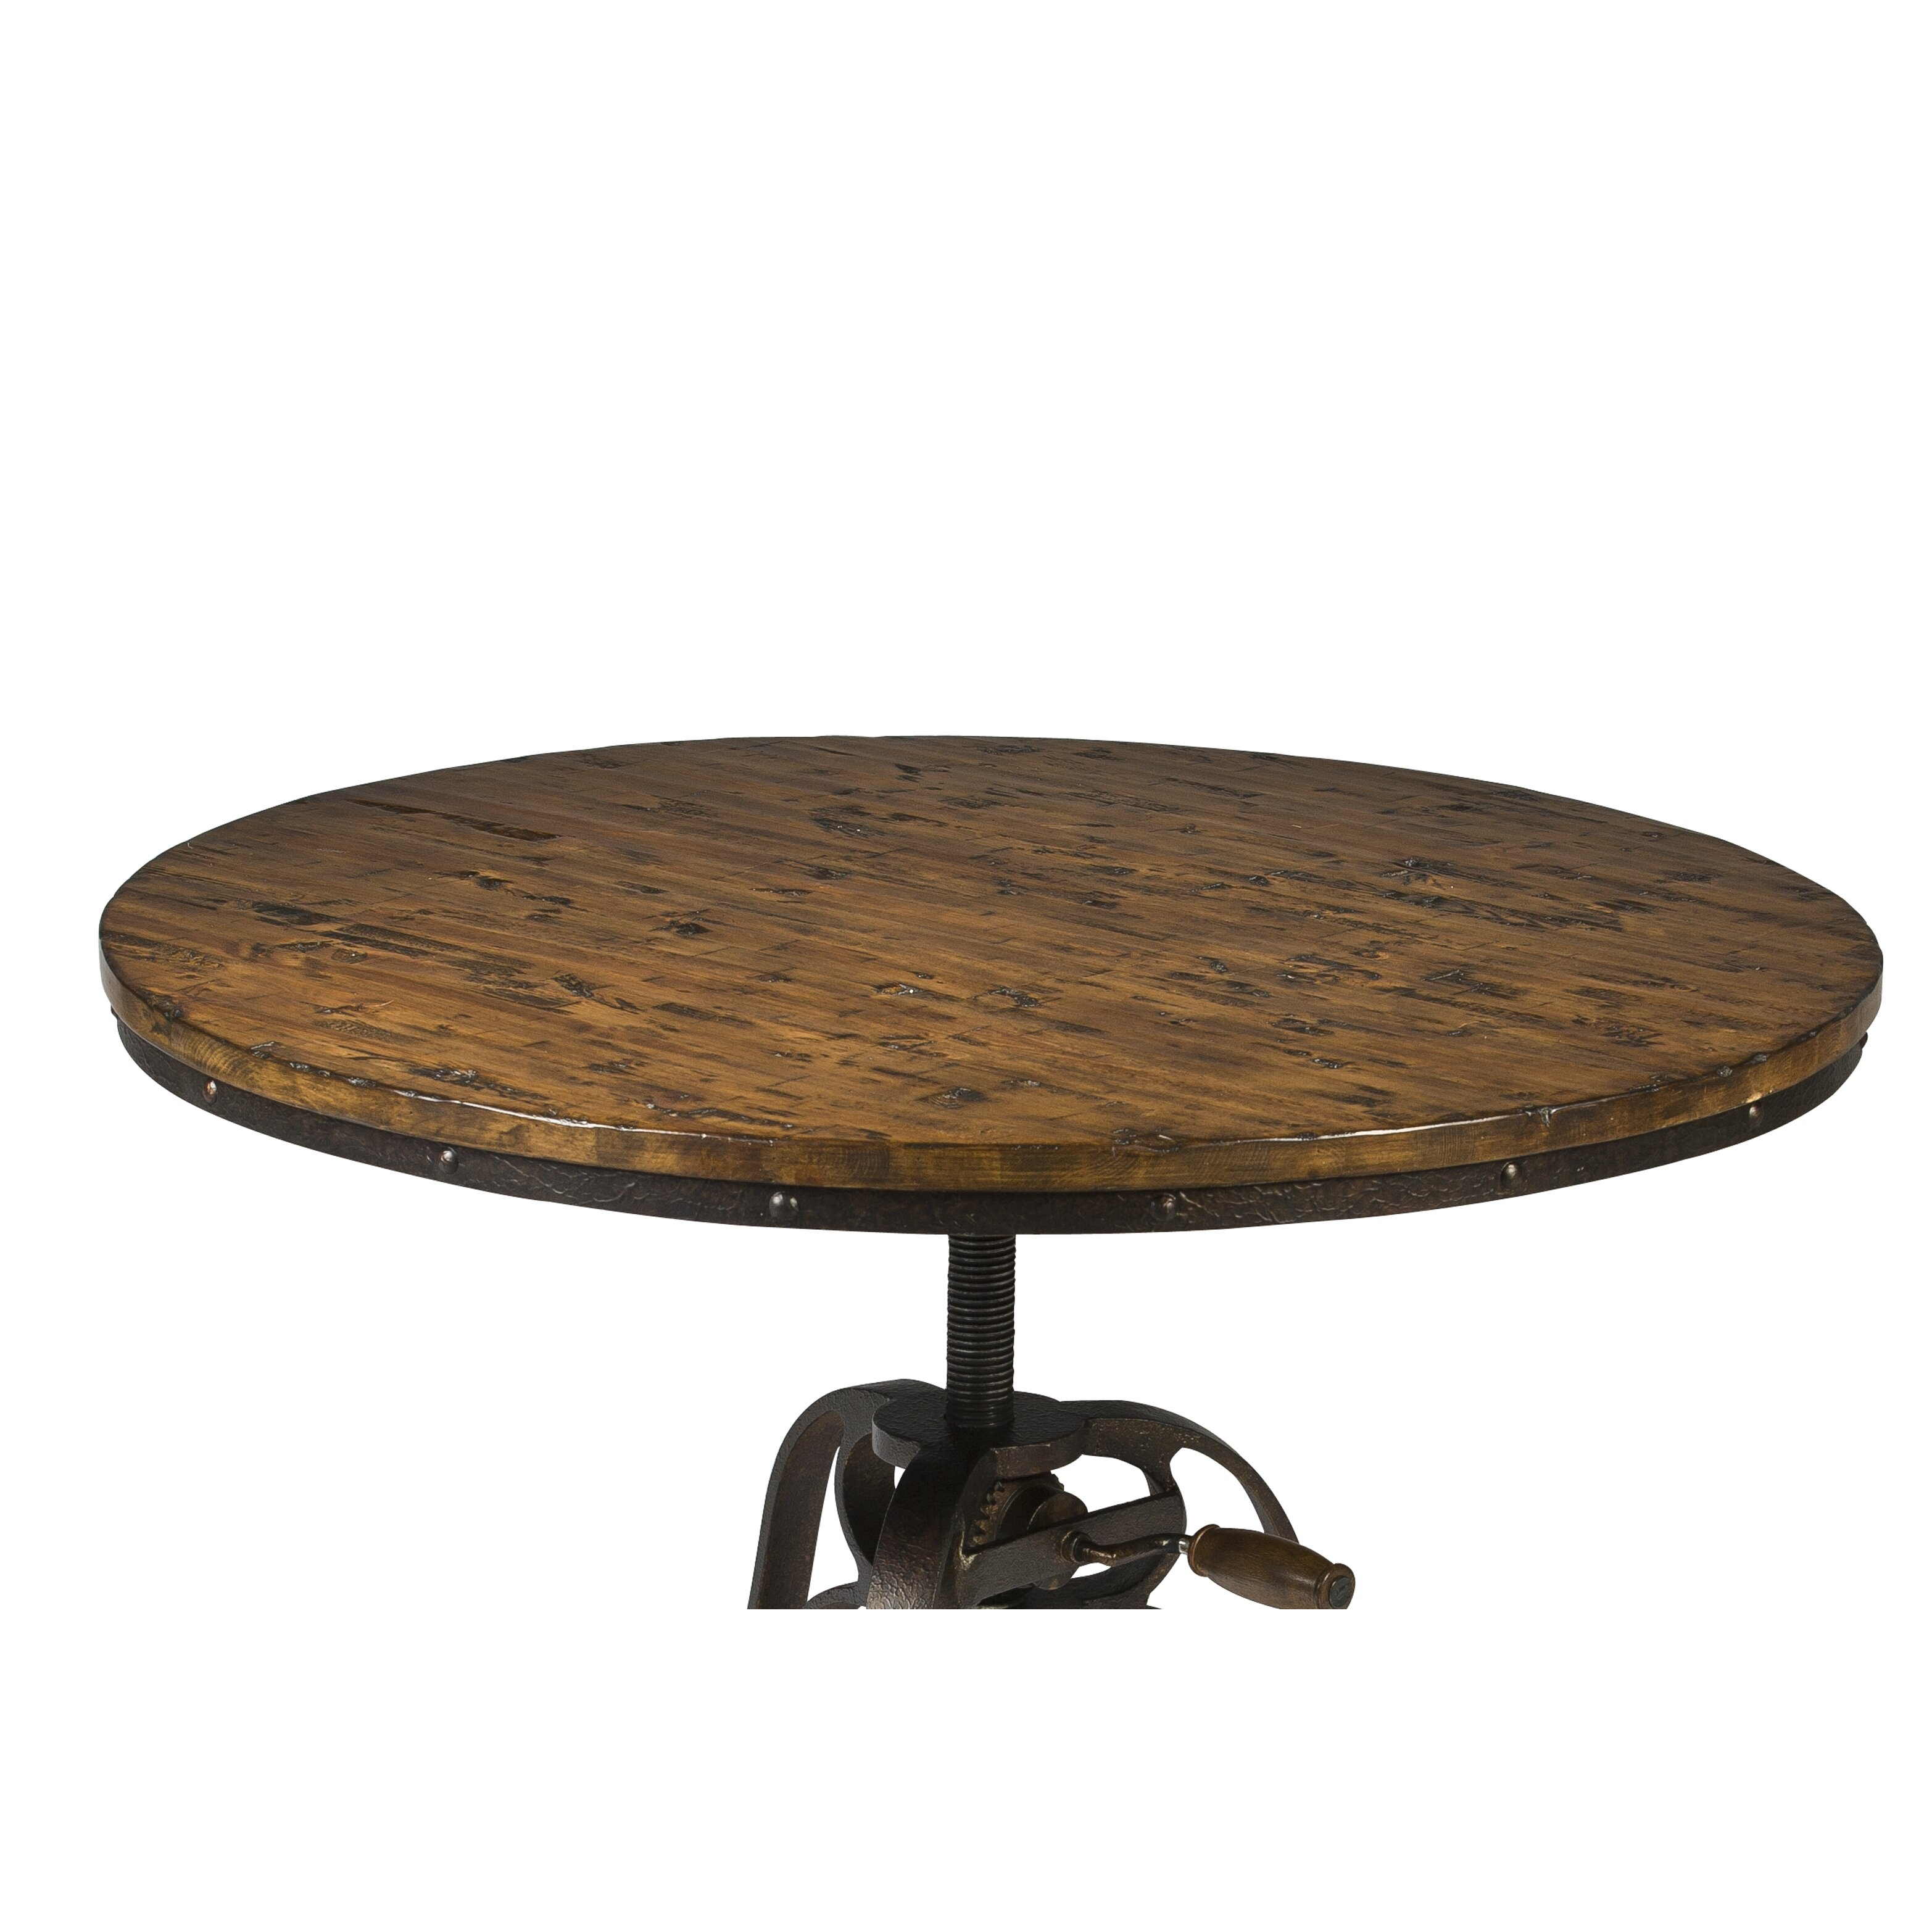 Magnussen Home Cranfill Round Cocktail Table: Magnussen Cranfill Coffee Table & Reviews